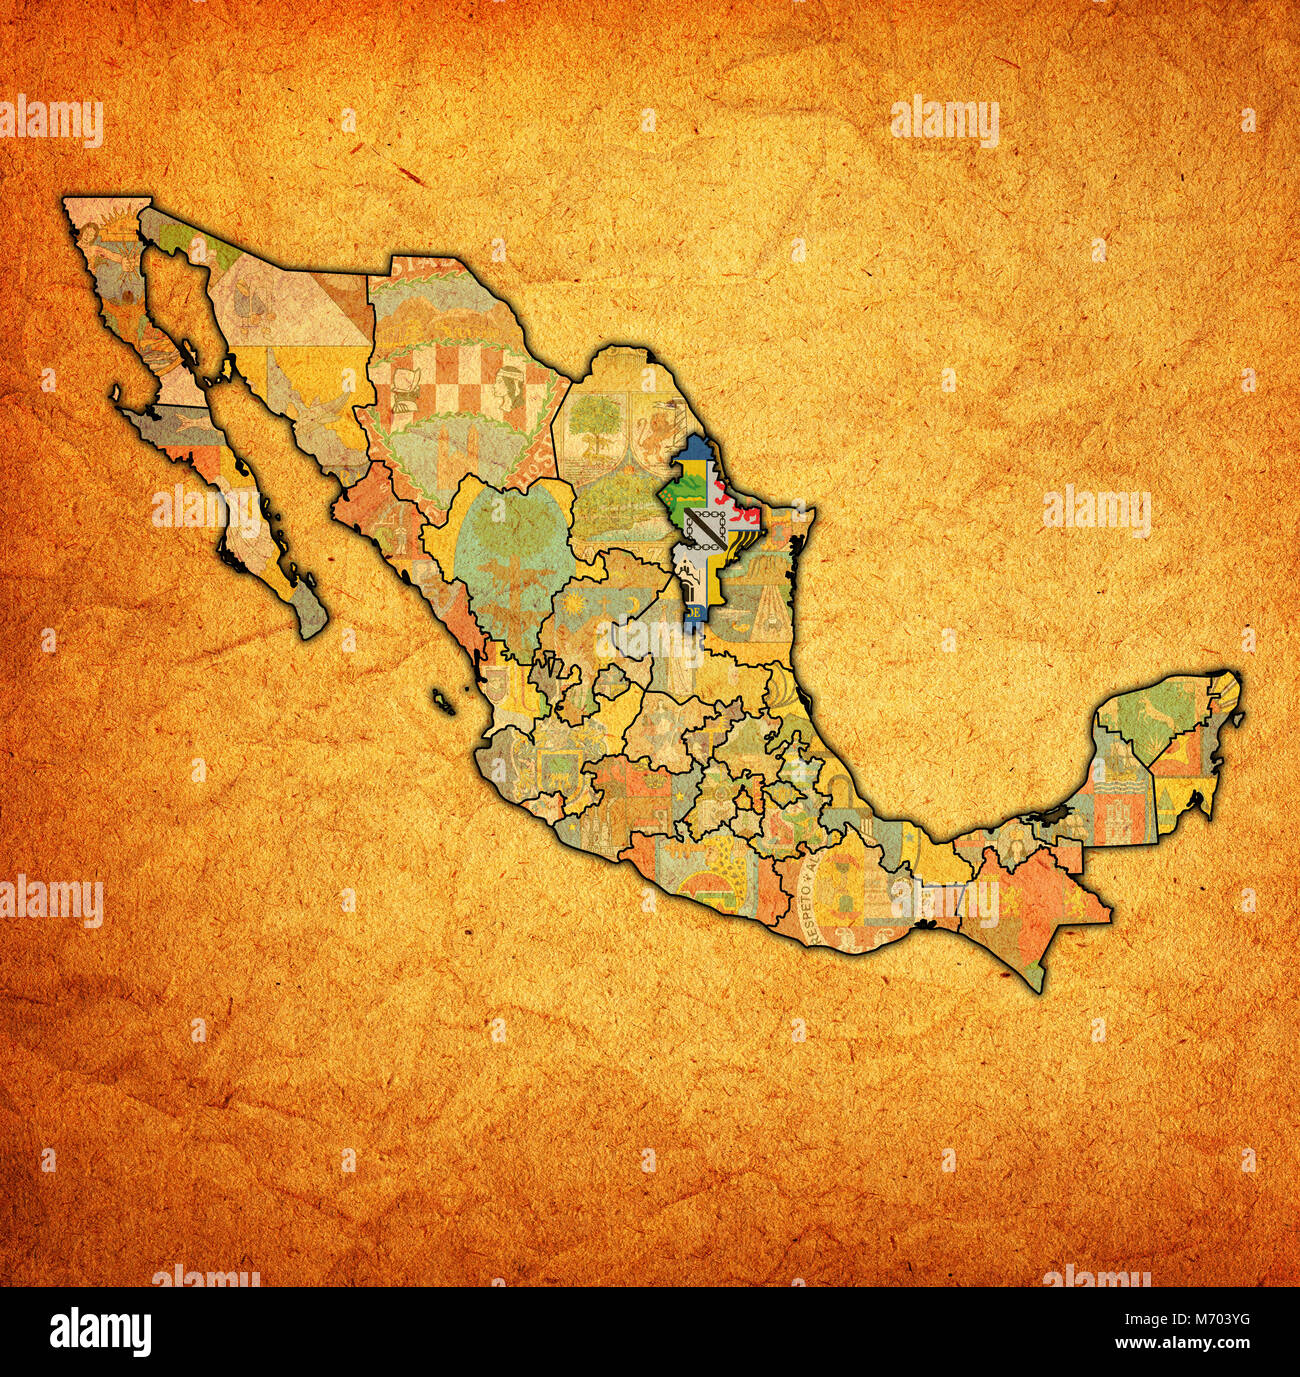 Map of nuevo leon stock photos map of nuevo leon stock images alamy emblem of nuevo leon state on map with administrative divisions and borders of mexico stock publicscrutiny Image collections